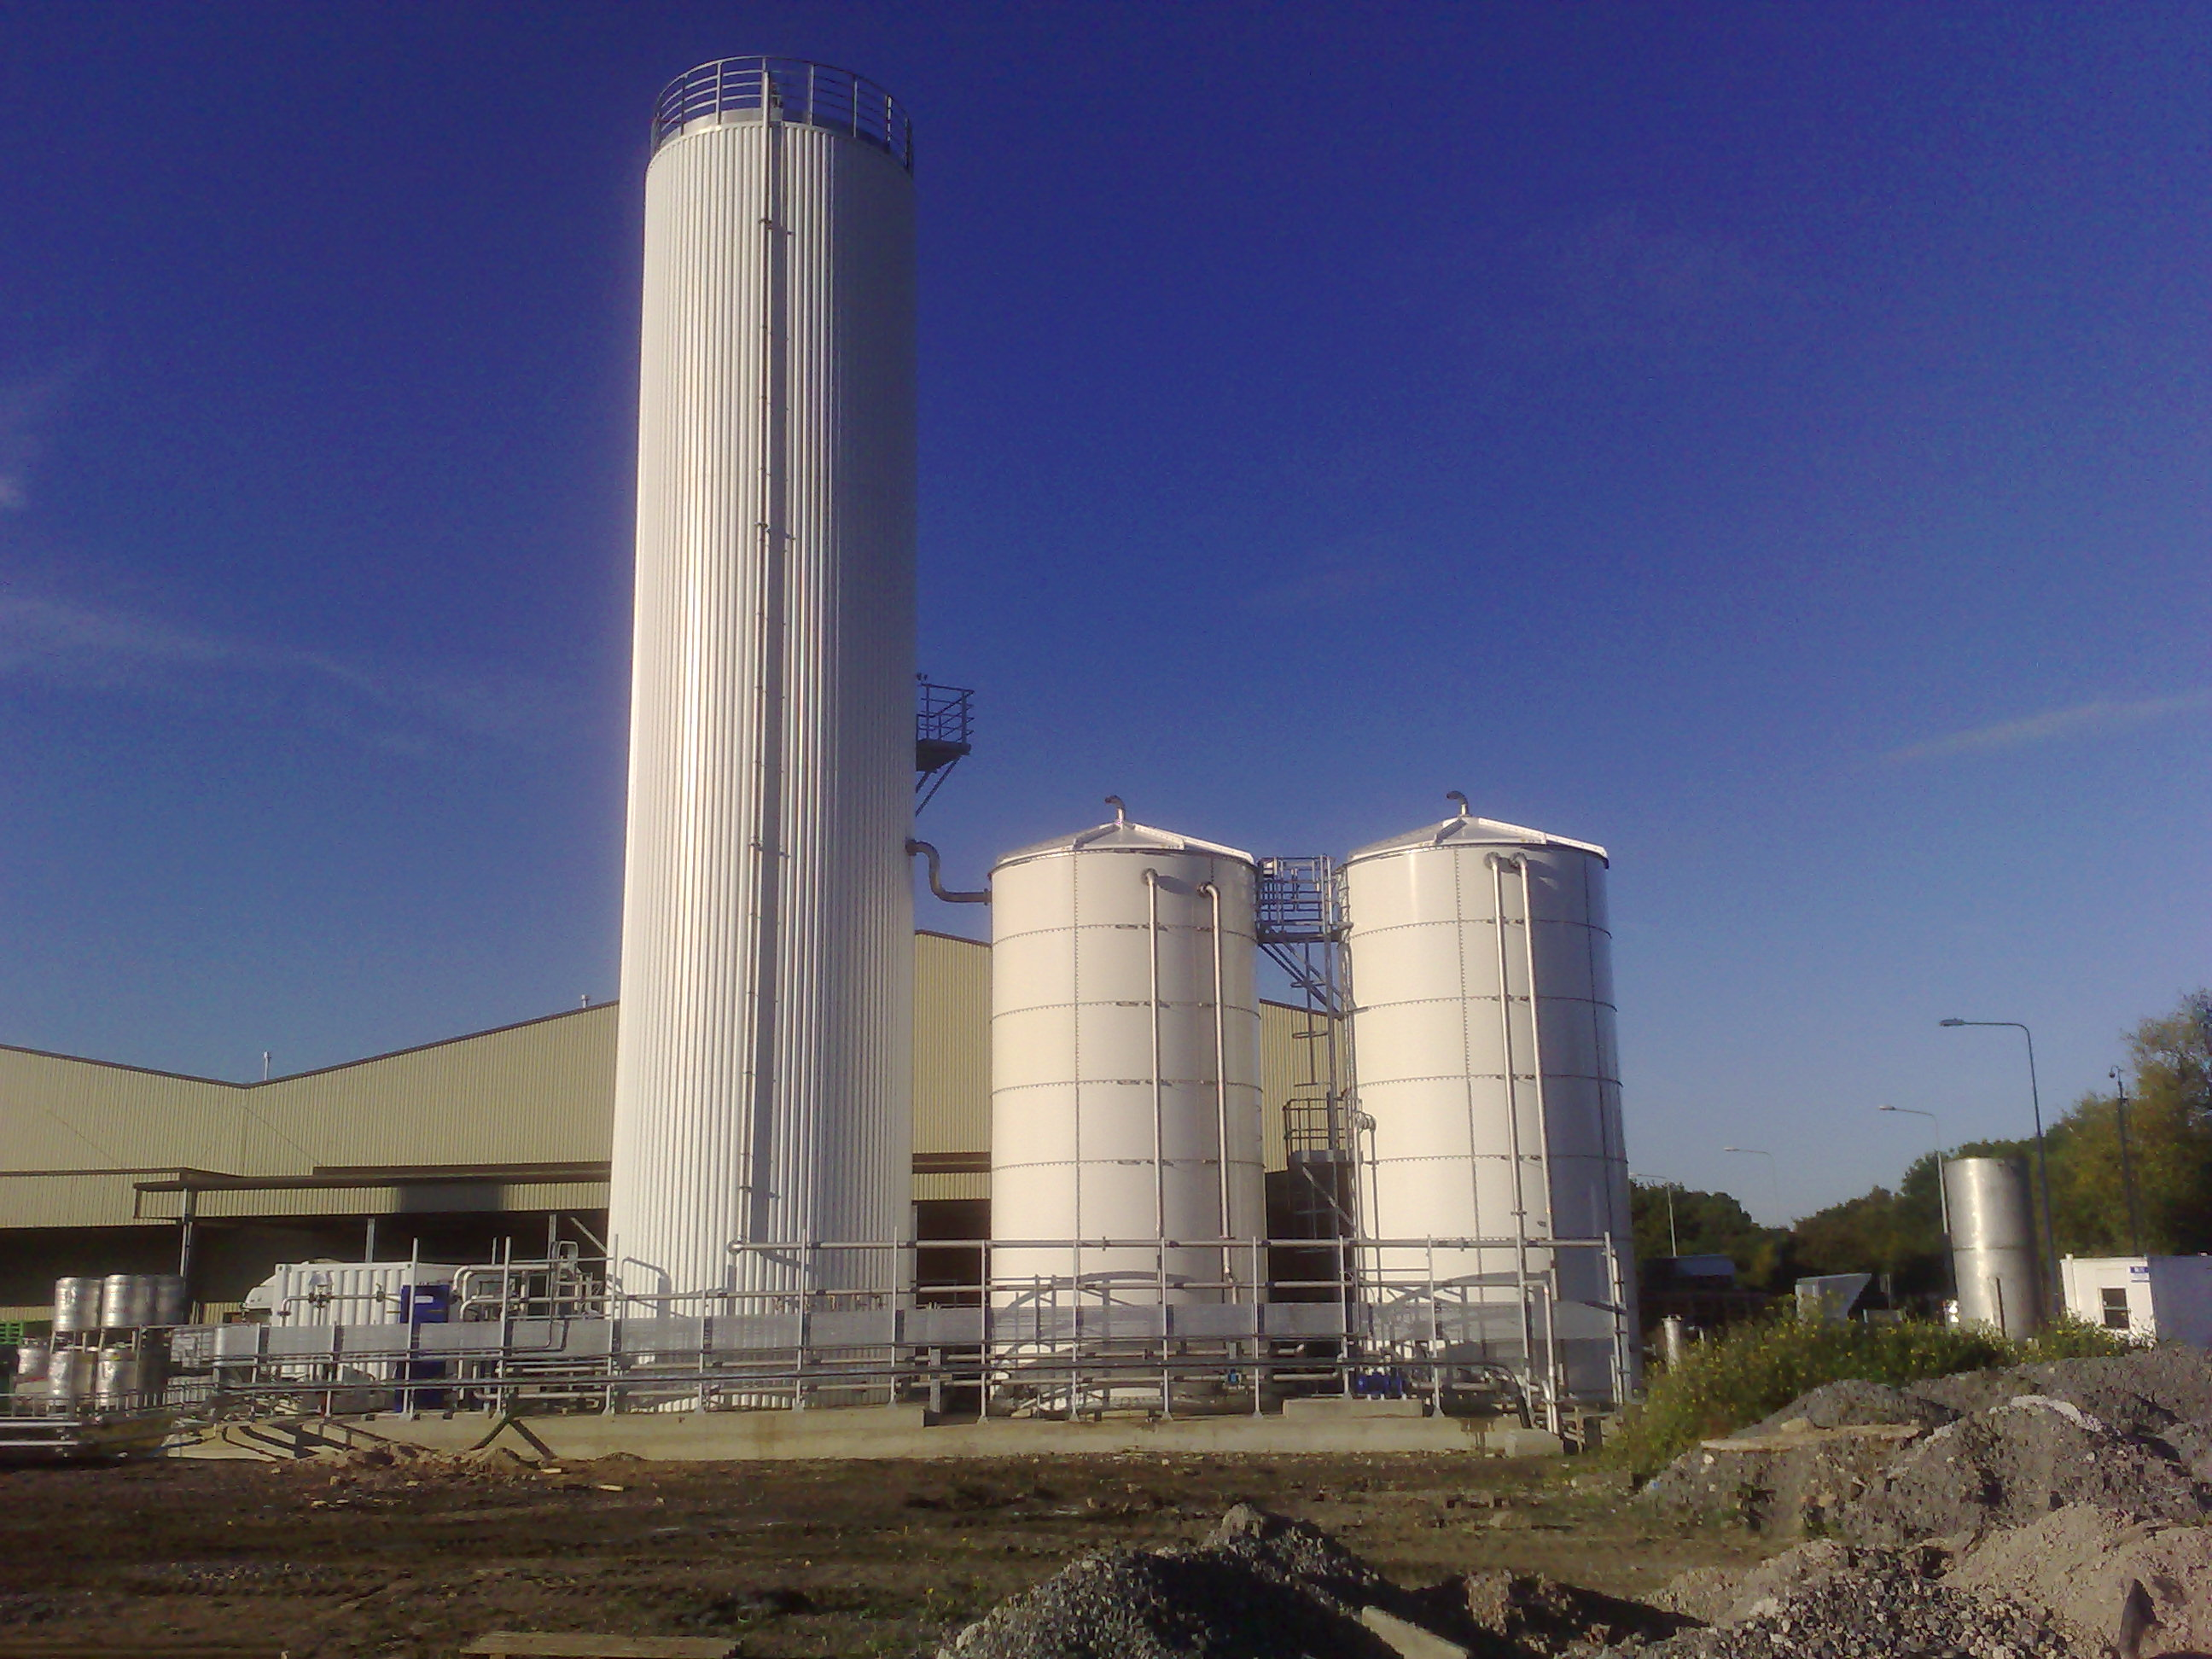 WEHRLE wastewater treatment for food & beverage industry  - 2009, Unilever, Gloucester (Great Britain)